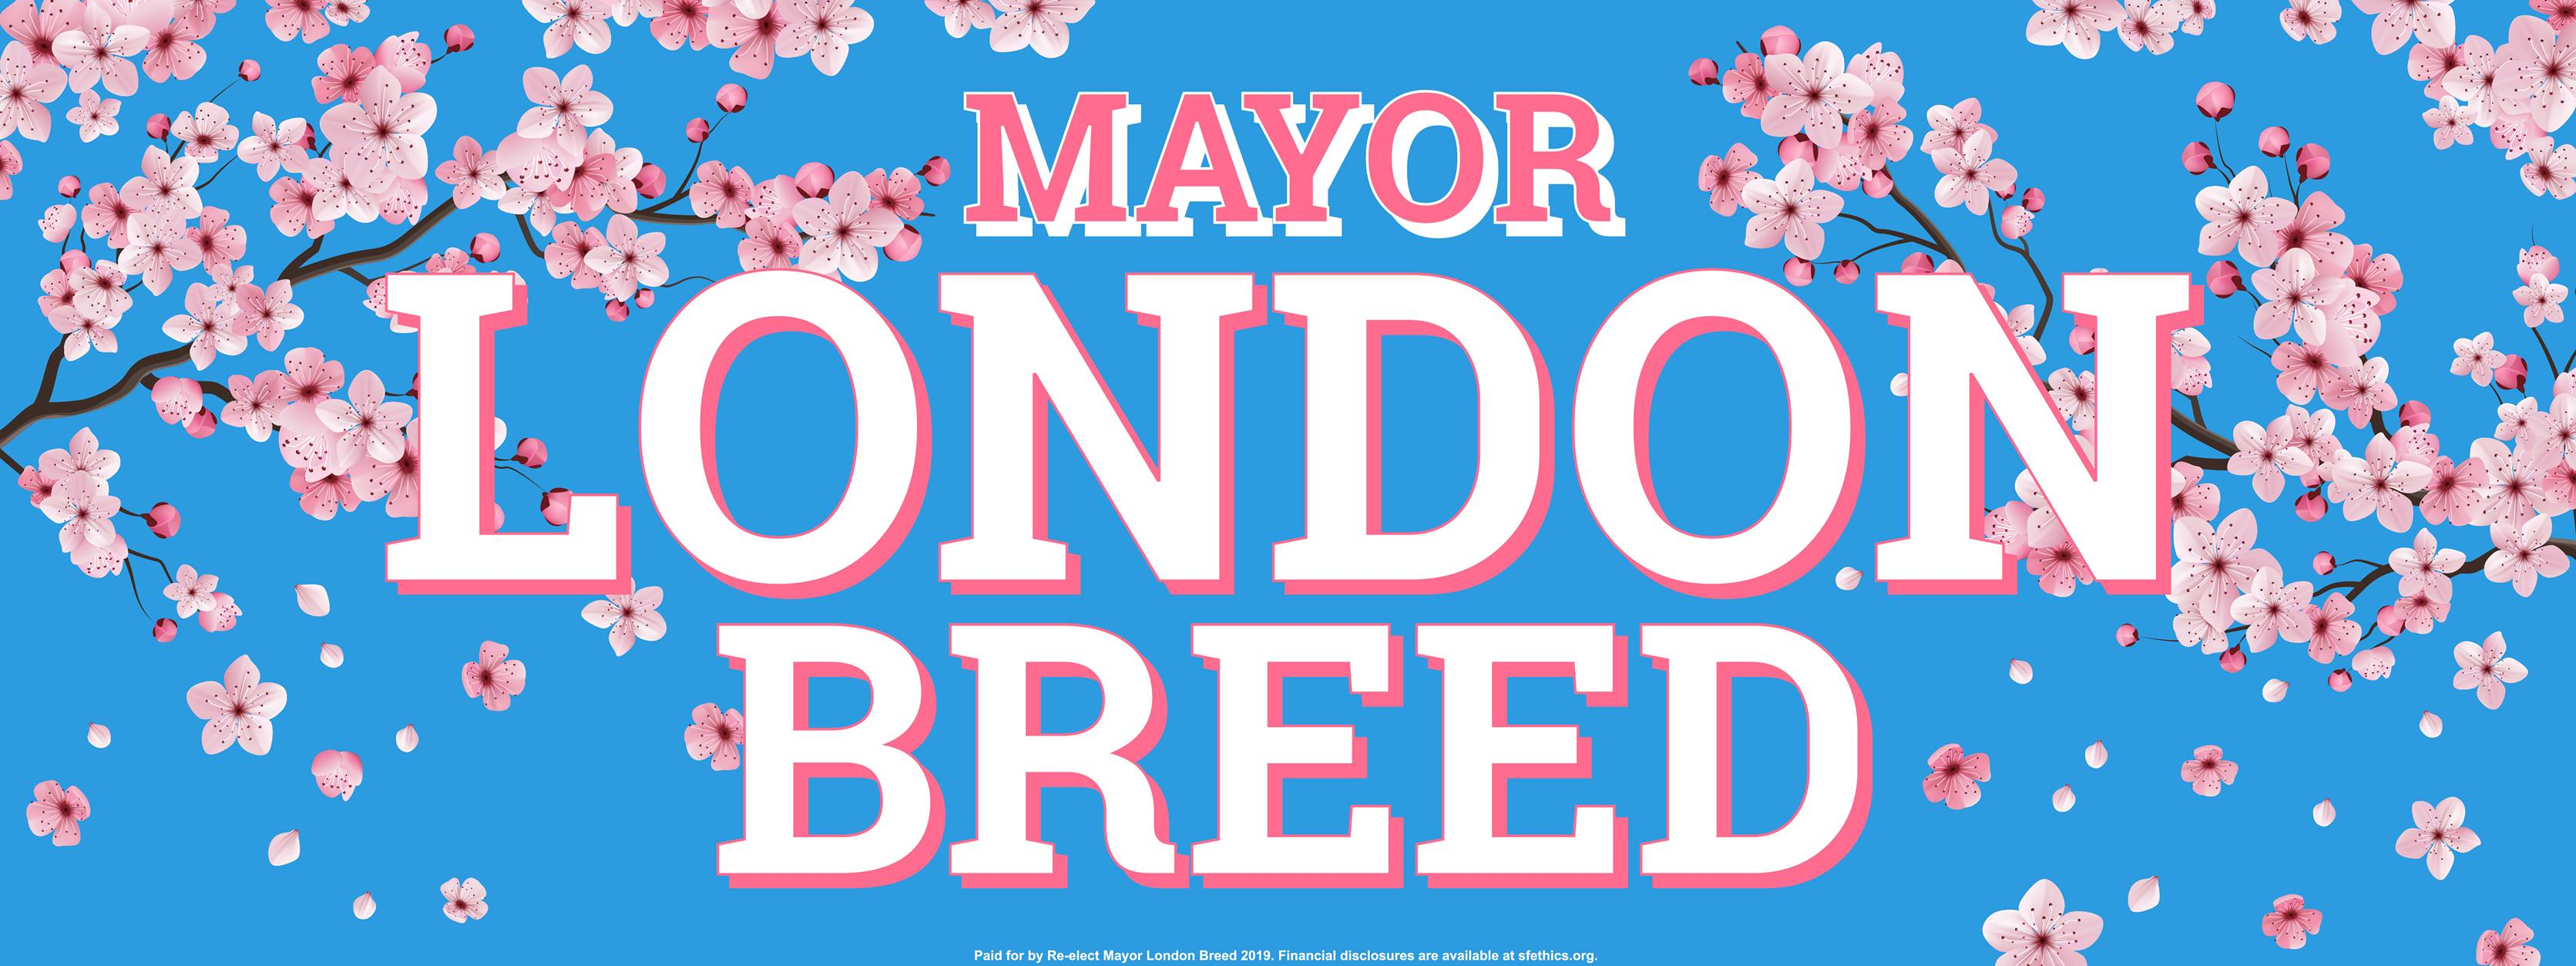 4/21: Join Mayor London Breed in the Cherry Blossom Festival Parade